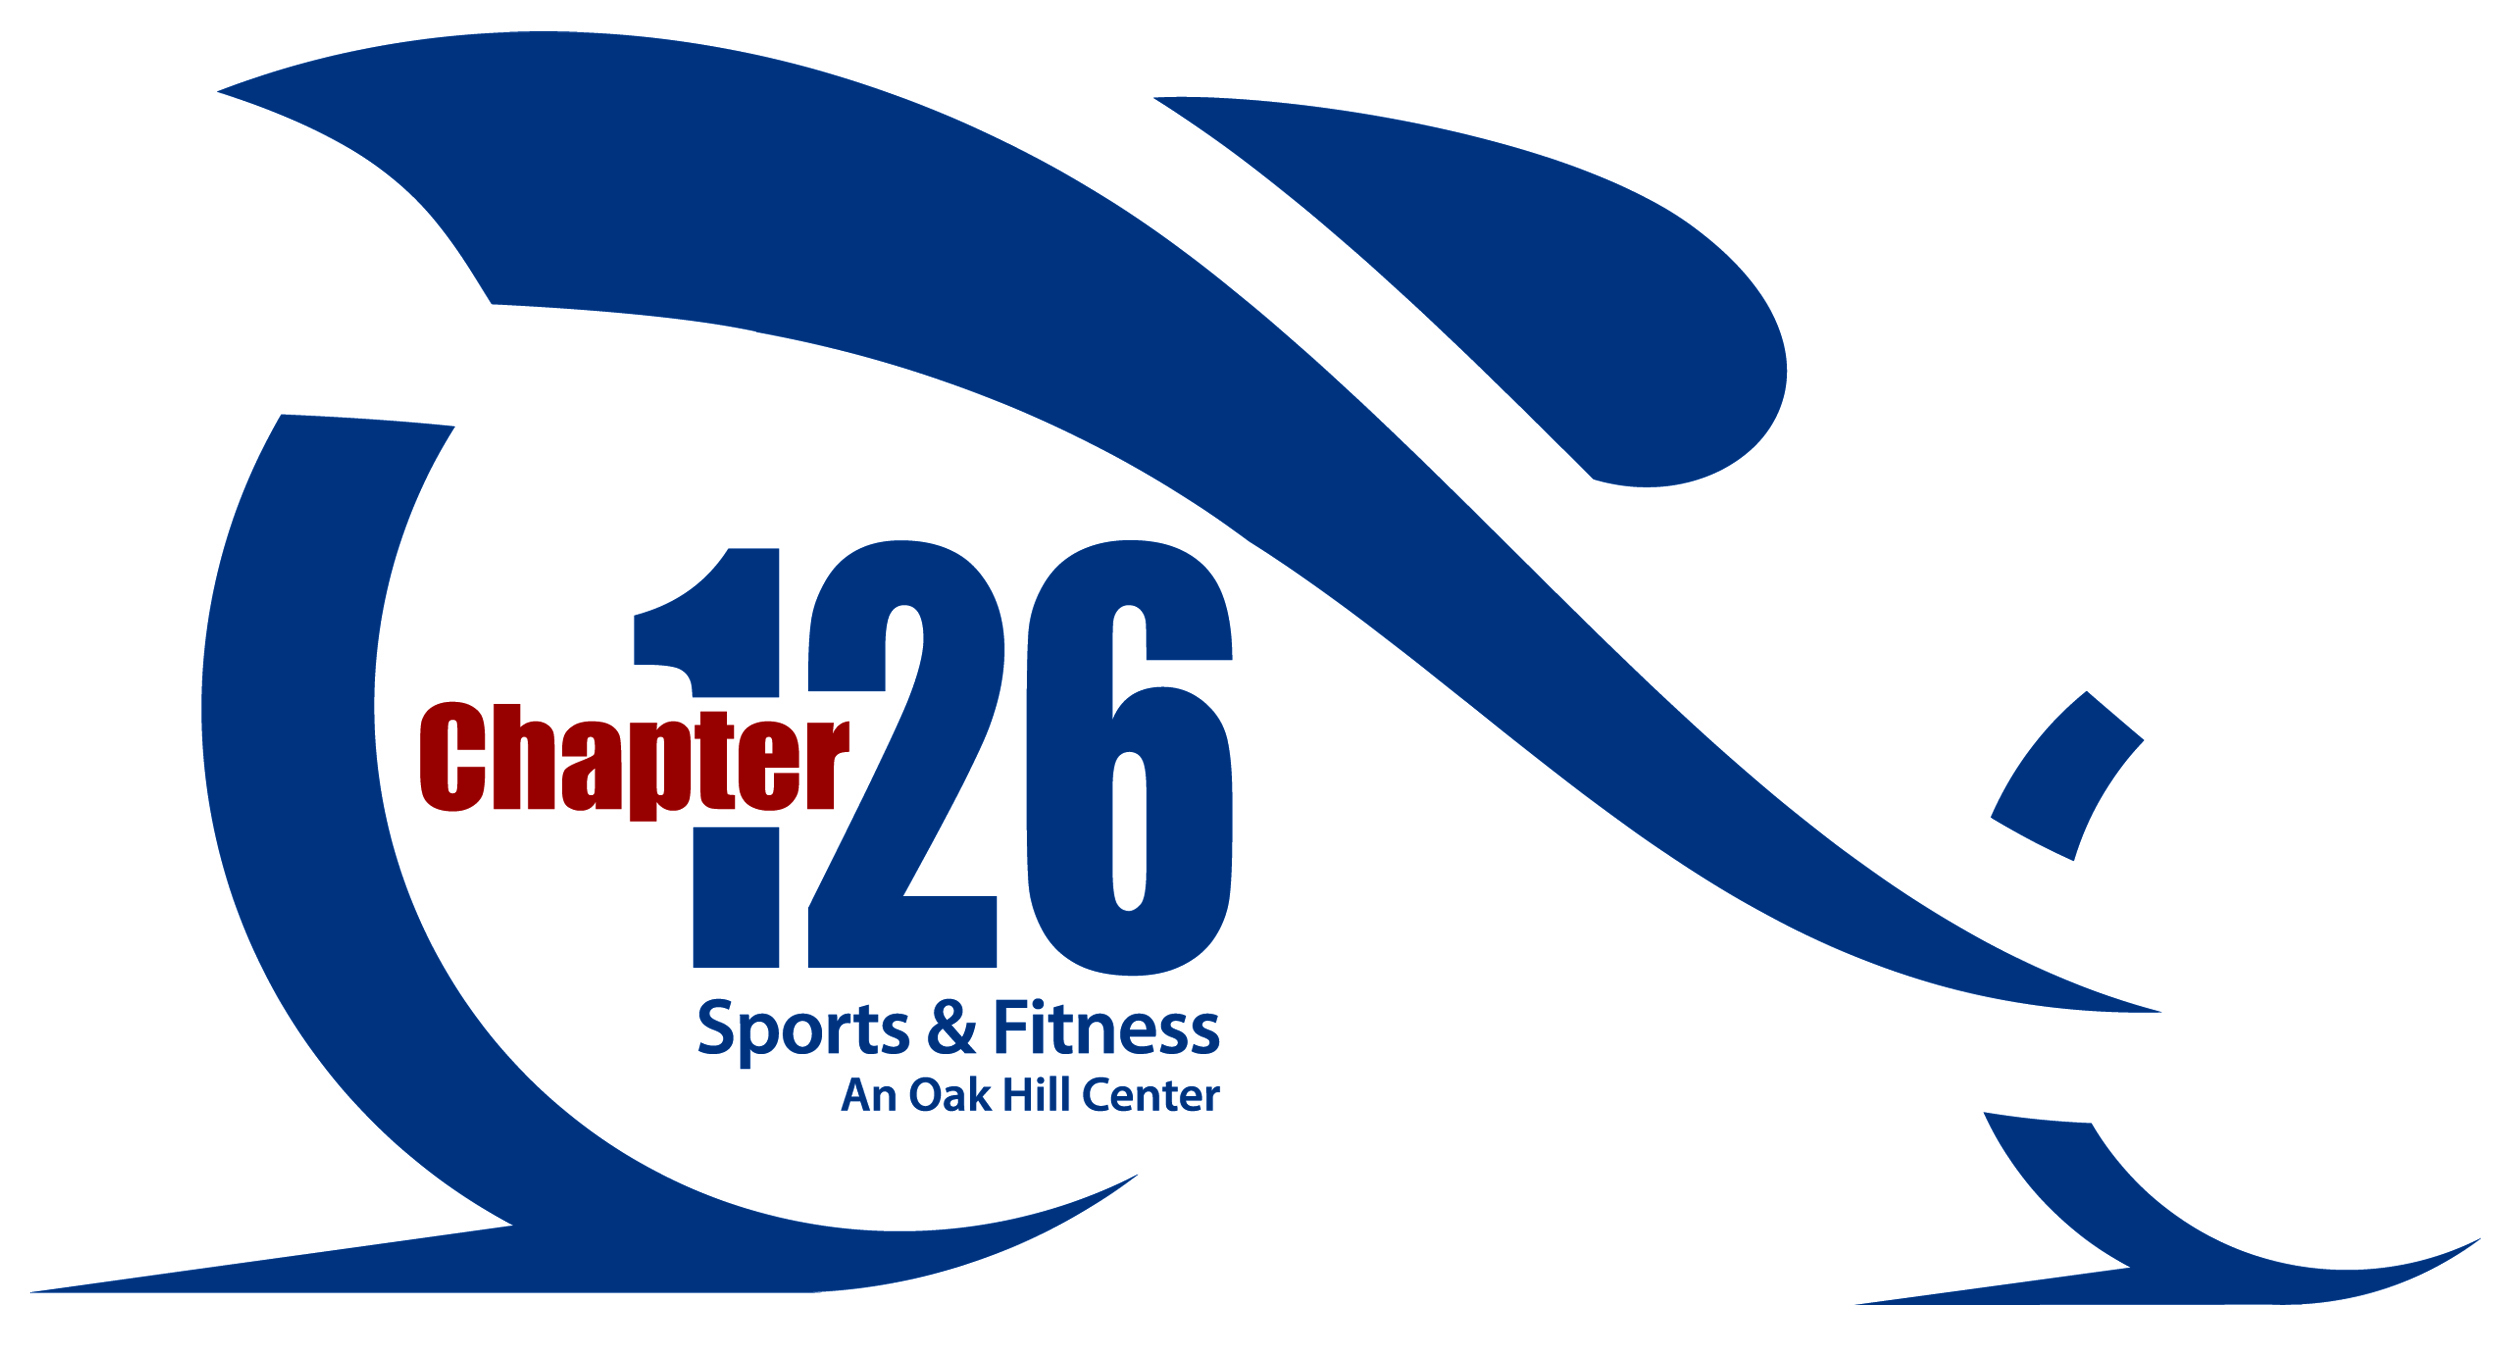 Chapter 126 Sports & Fitness